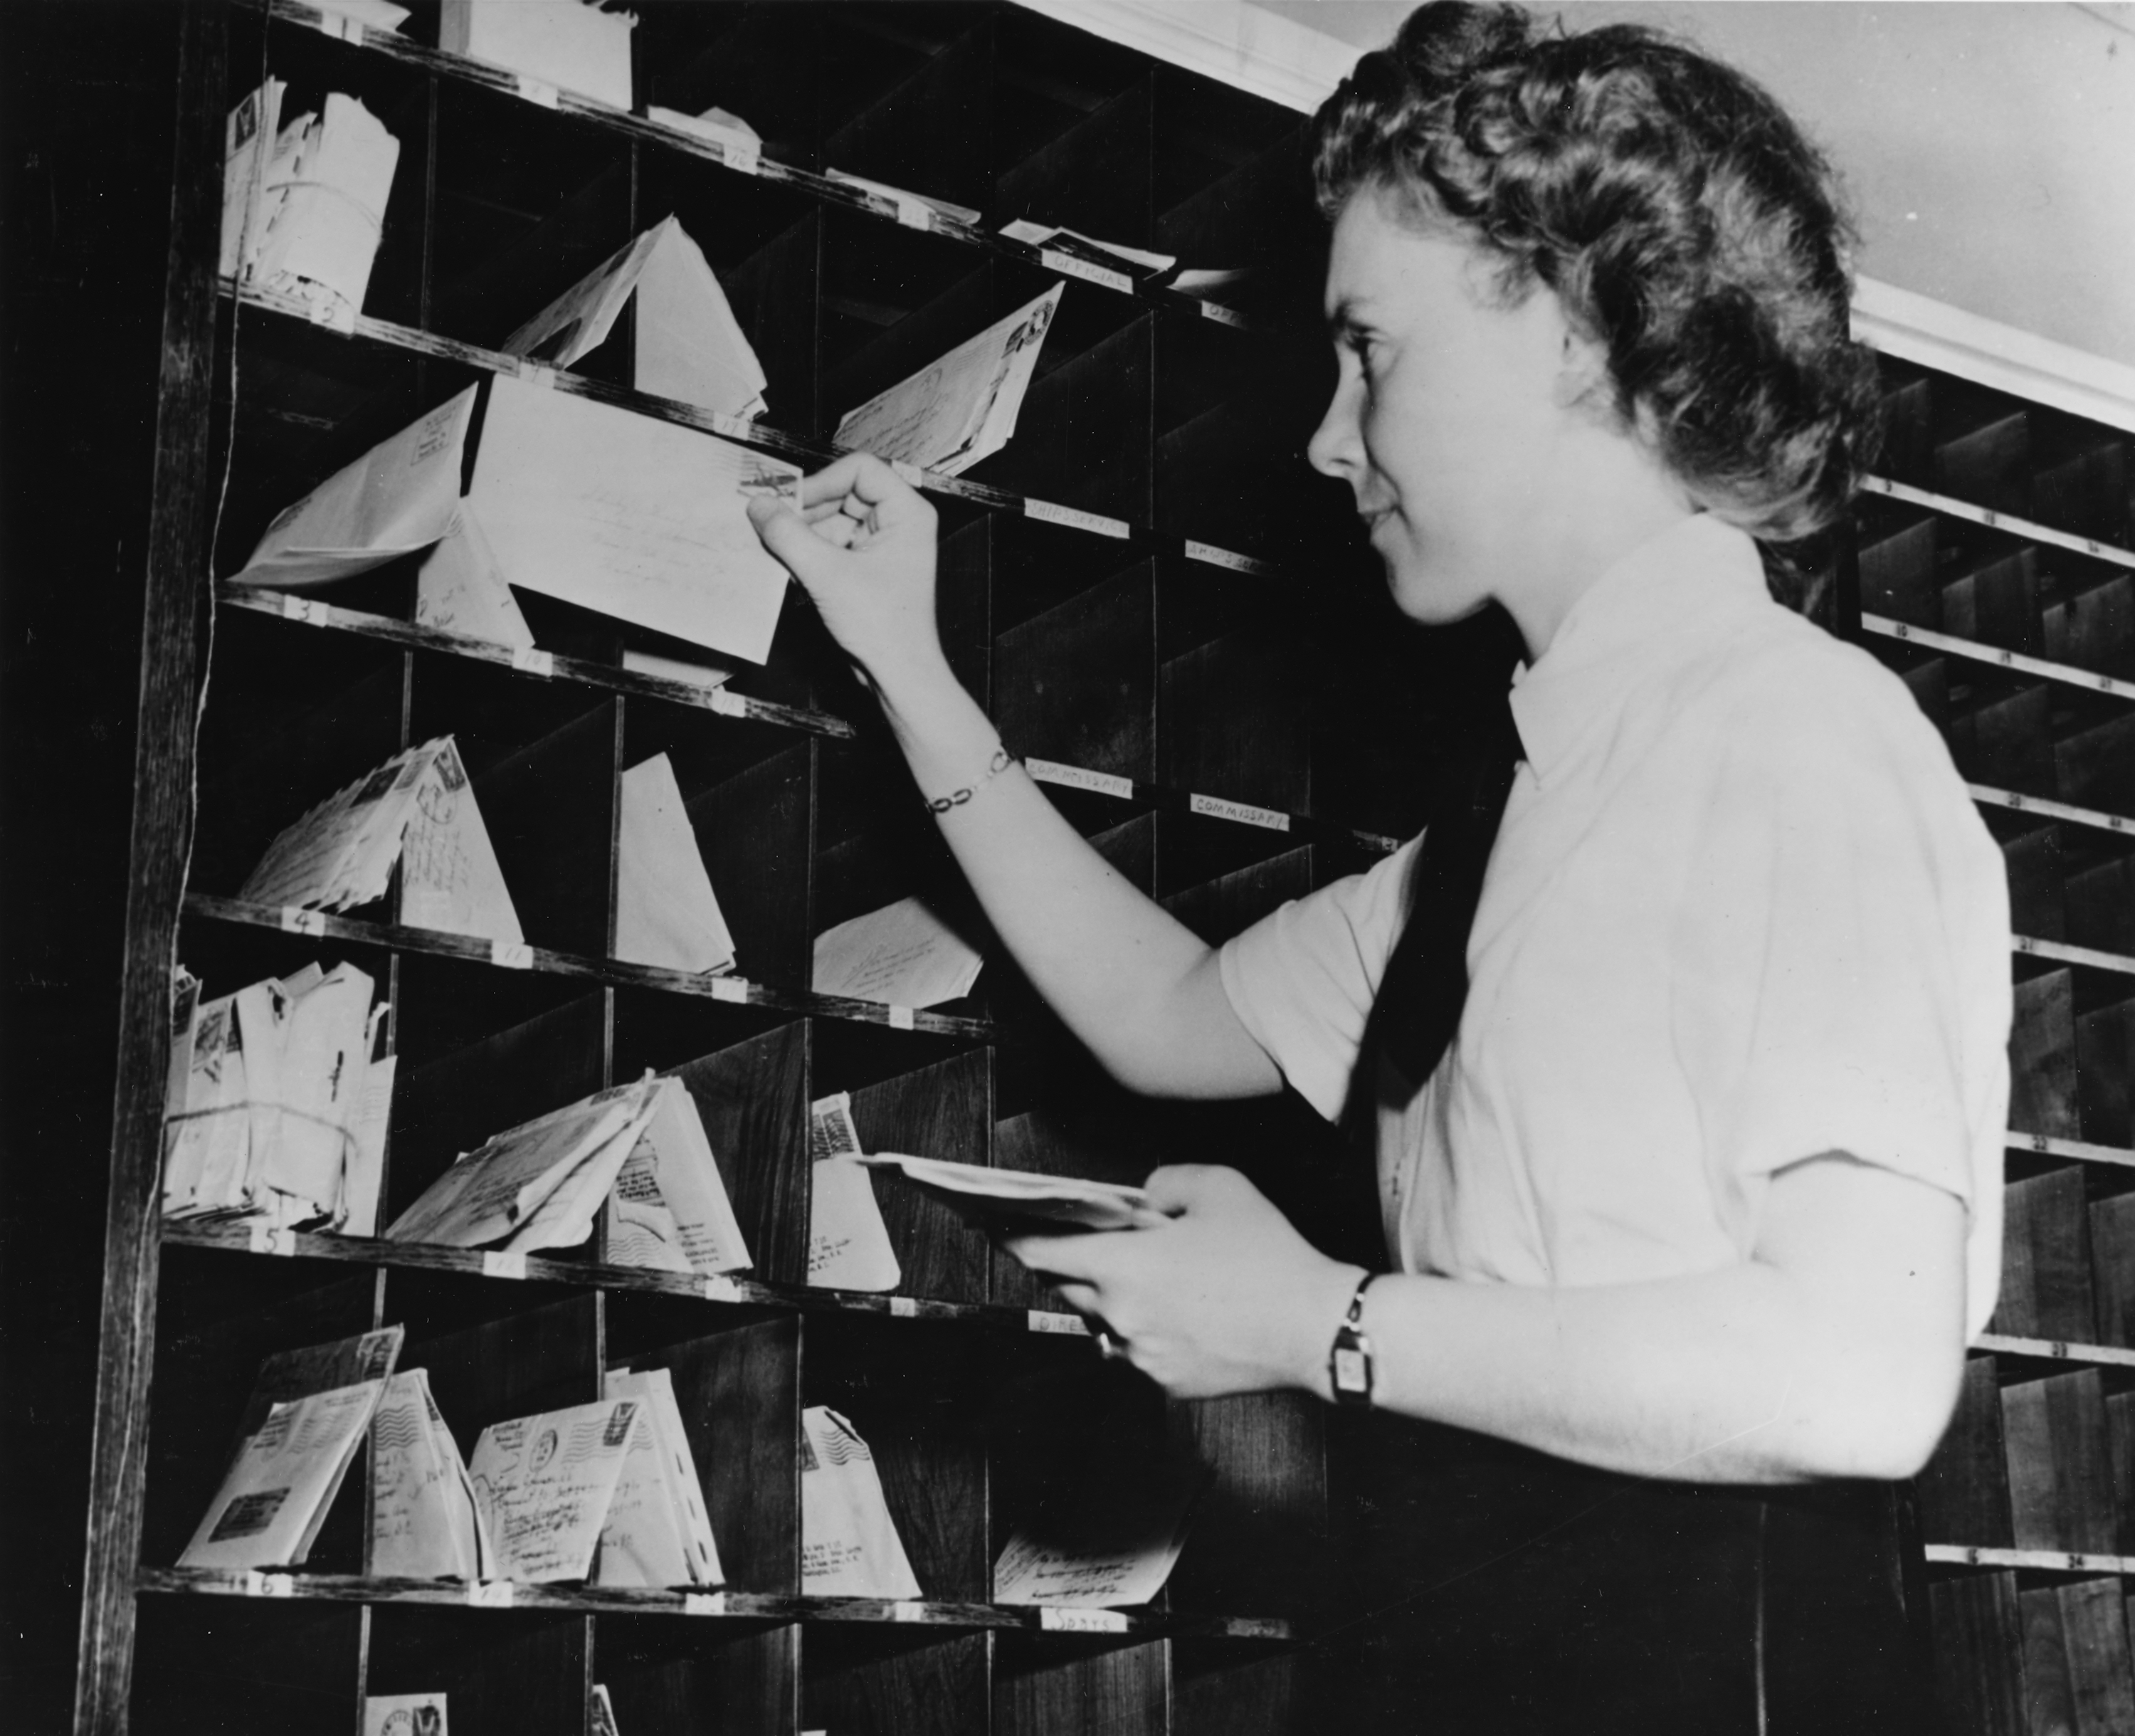 WAVES Postal Worker Distributes Mail